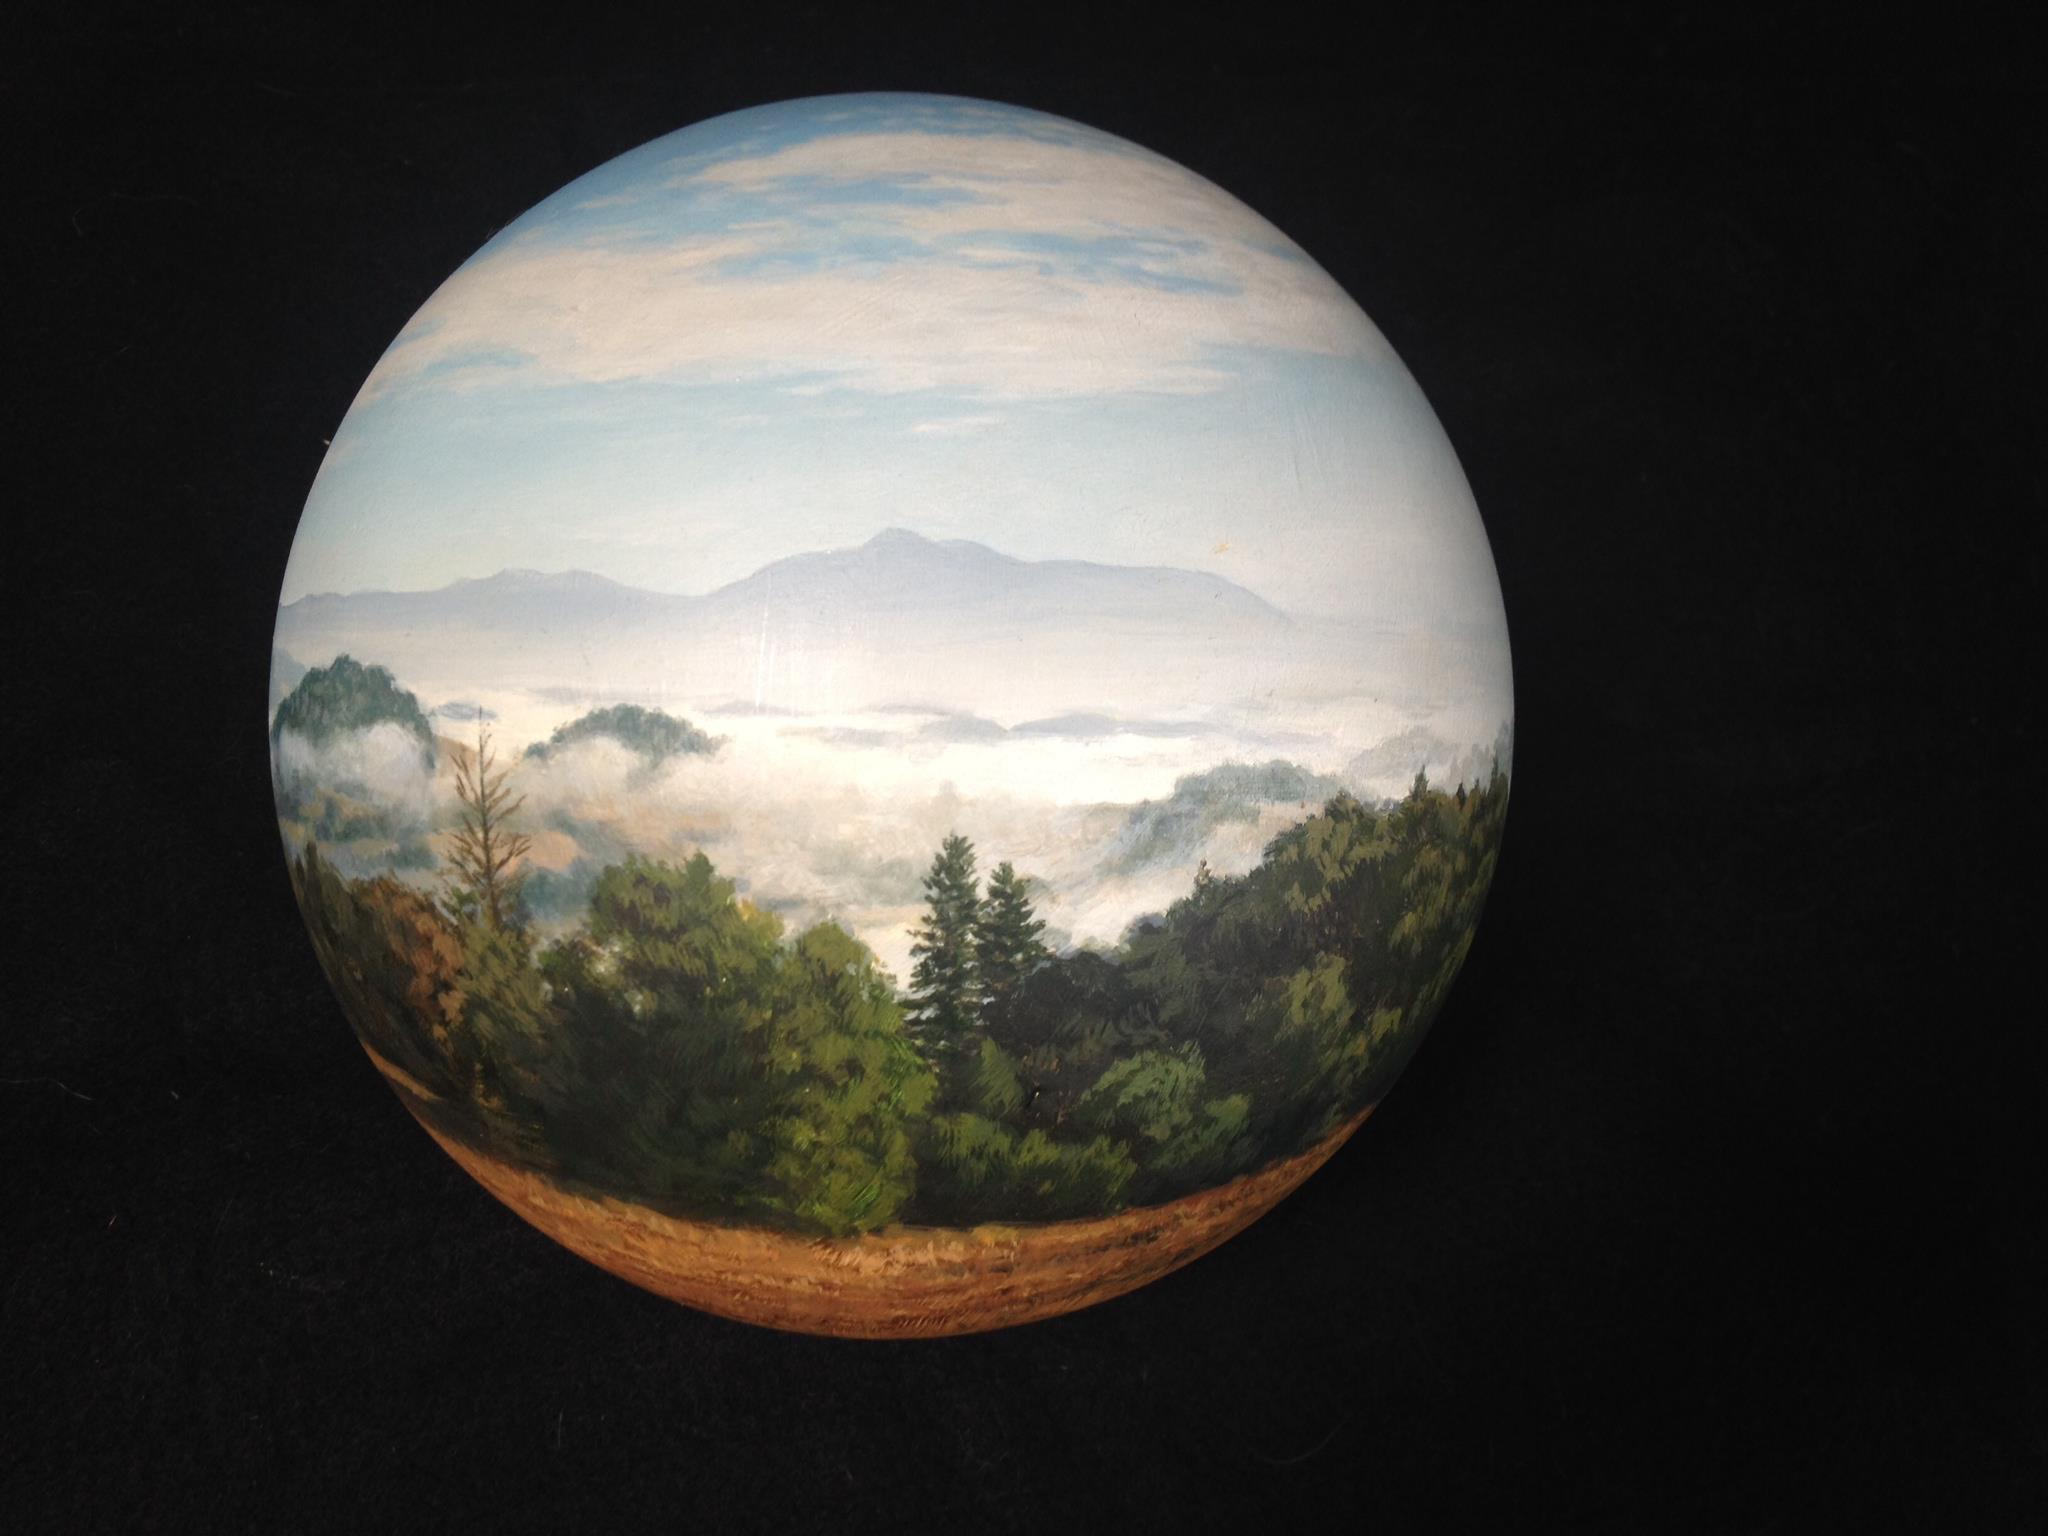 "Christopher Evans, Mountain in the Distance 8"" Panosphere Acrylic on Acrylic, 1999"